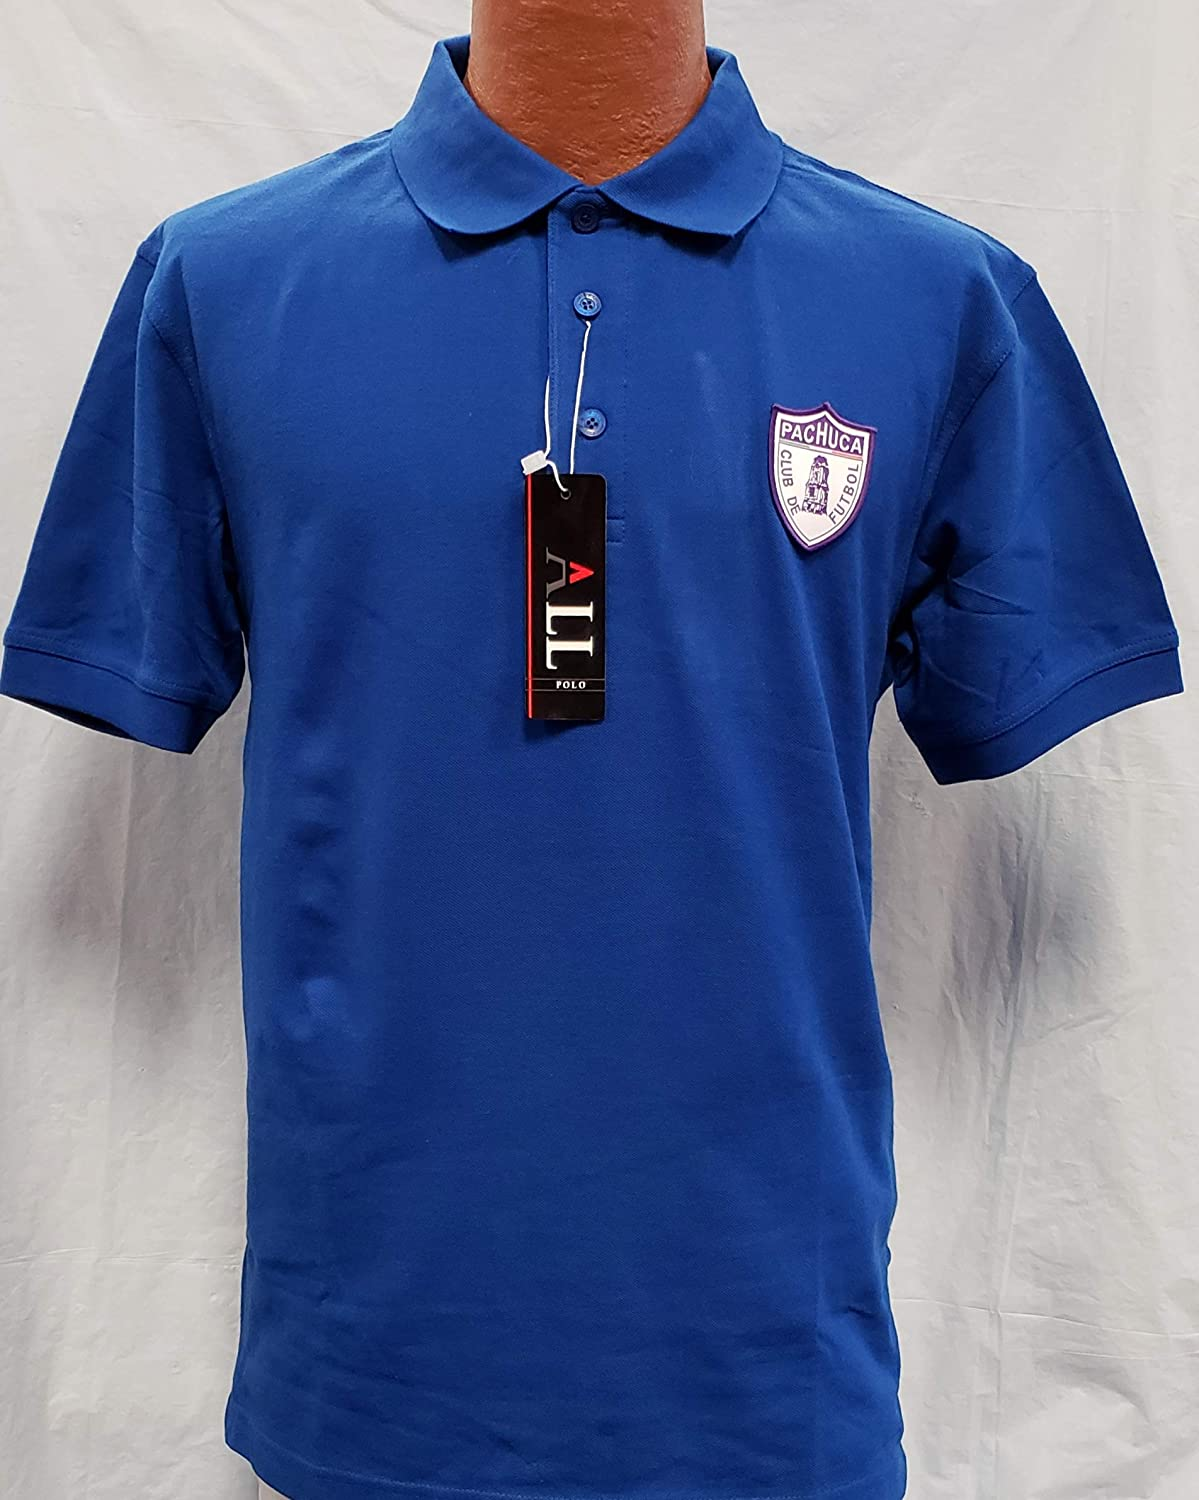 Tuzos de Pachuca Generica Polo Shirt with Patch Adult Size L Liga MX New